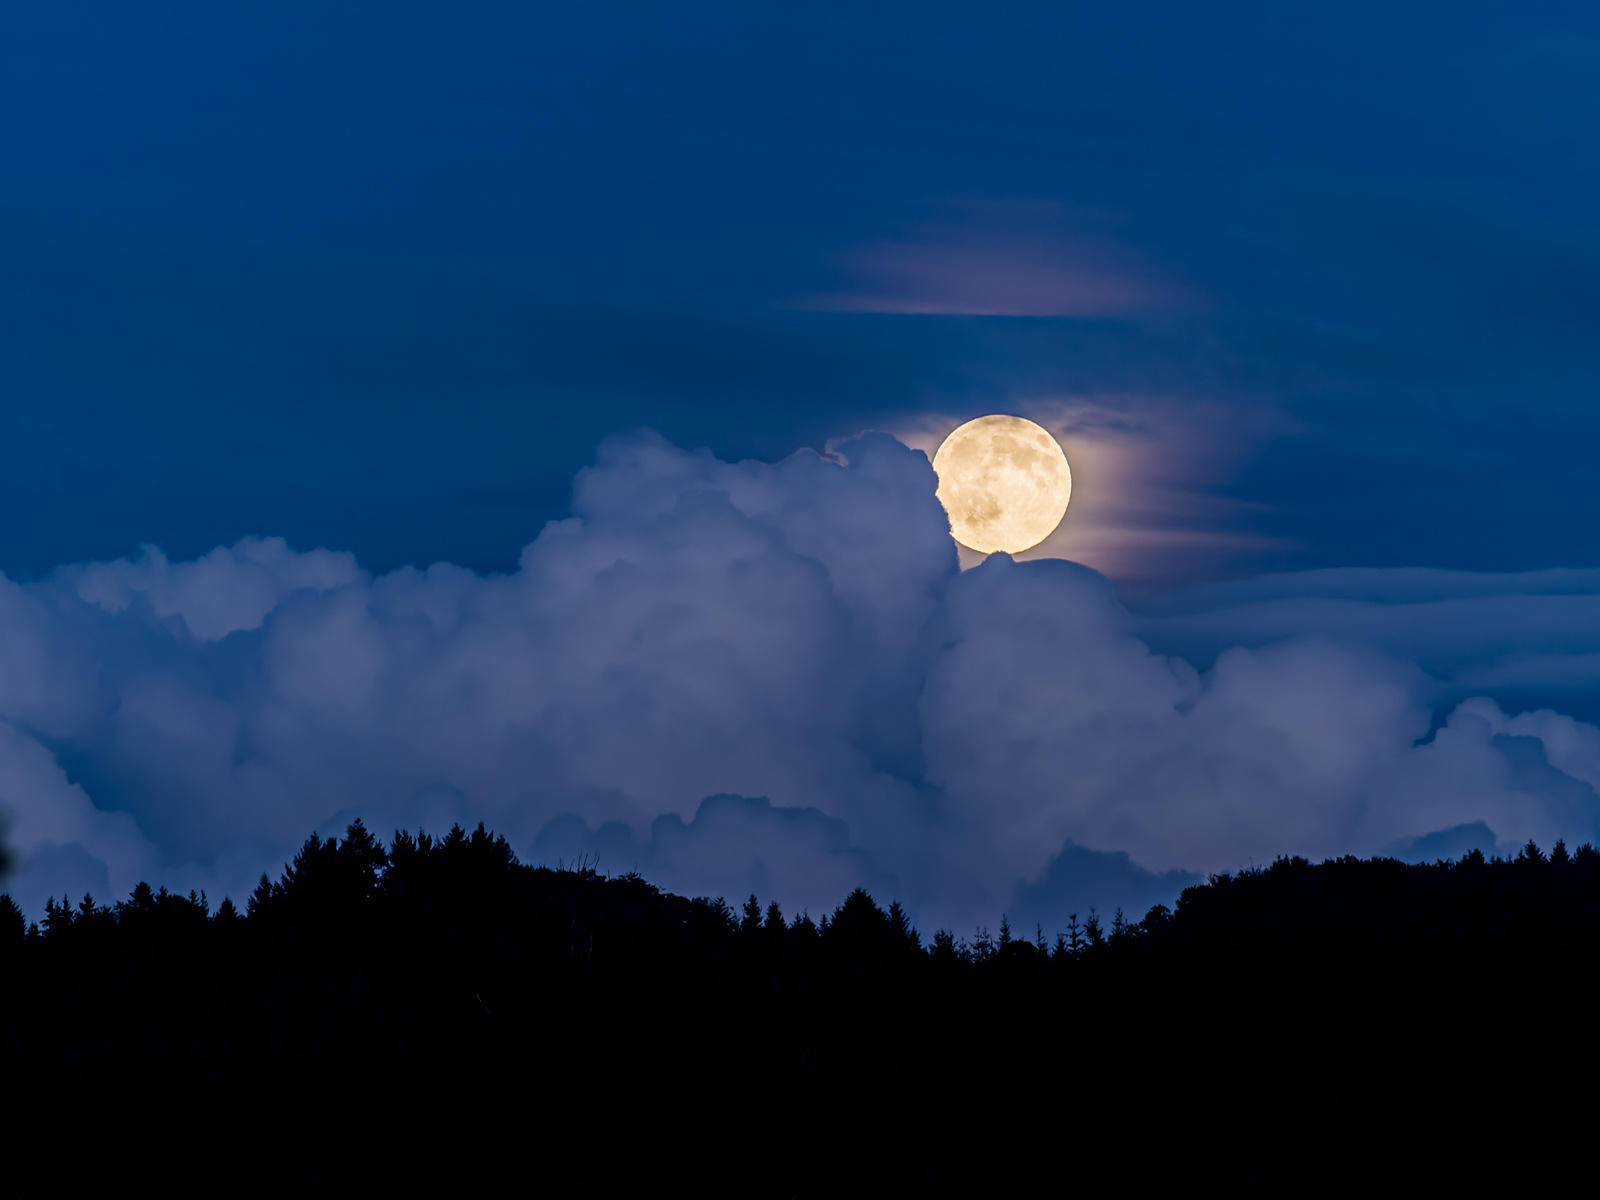 Moon rise in twilight behind clouds